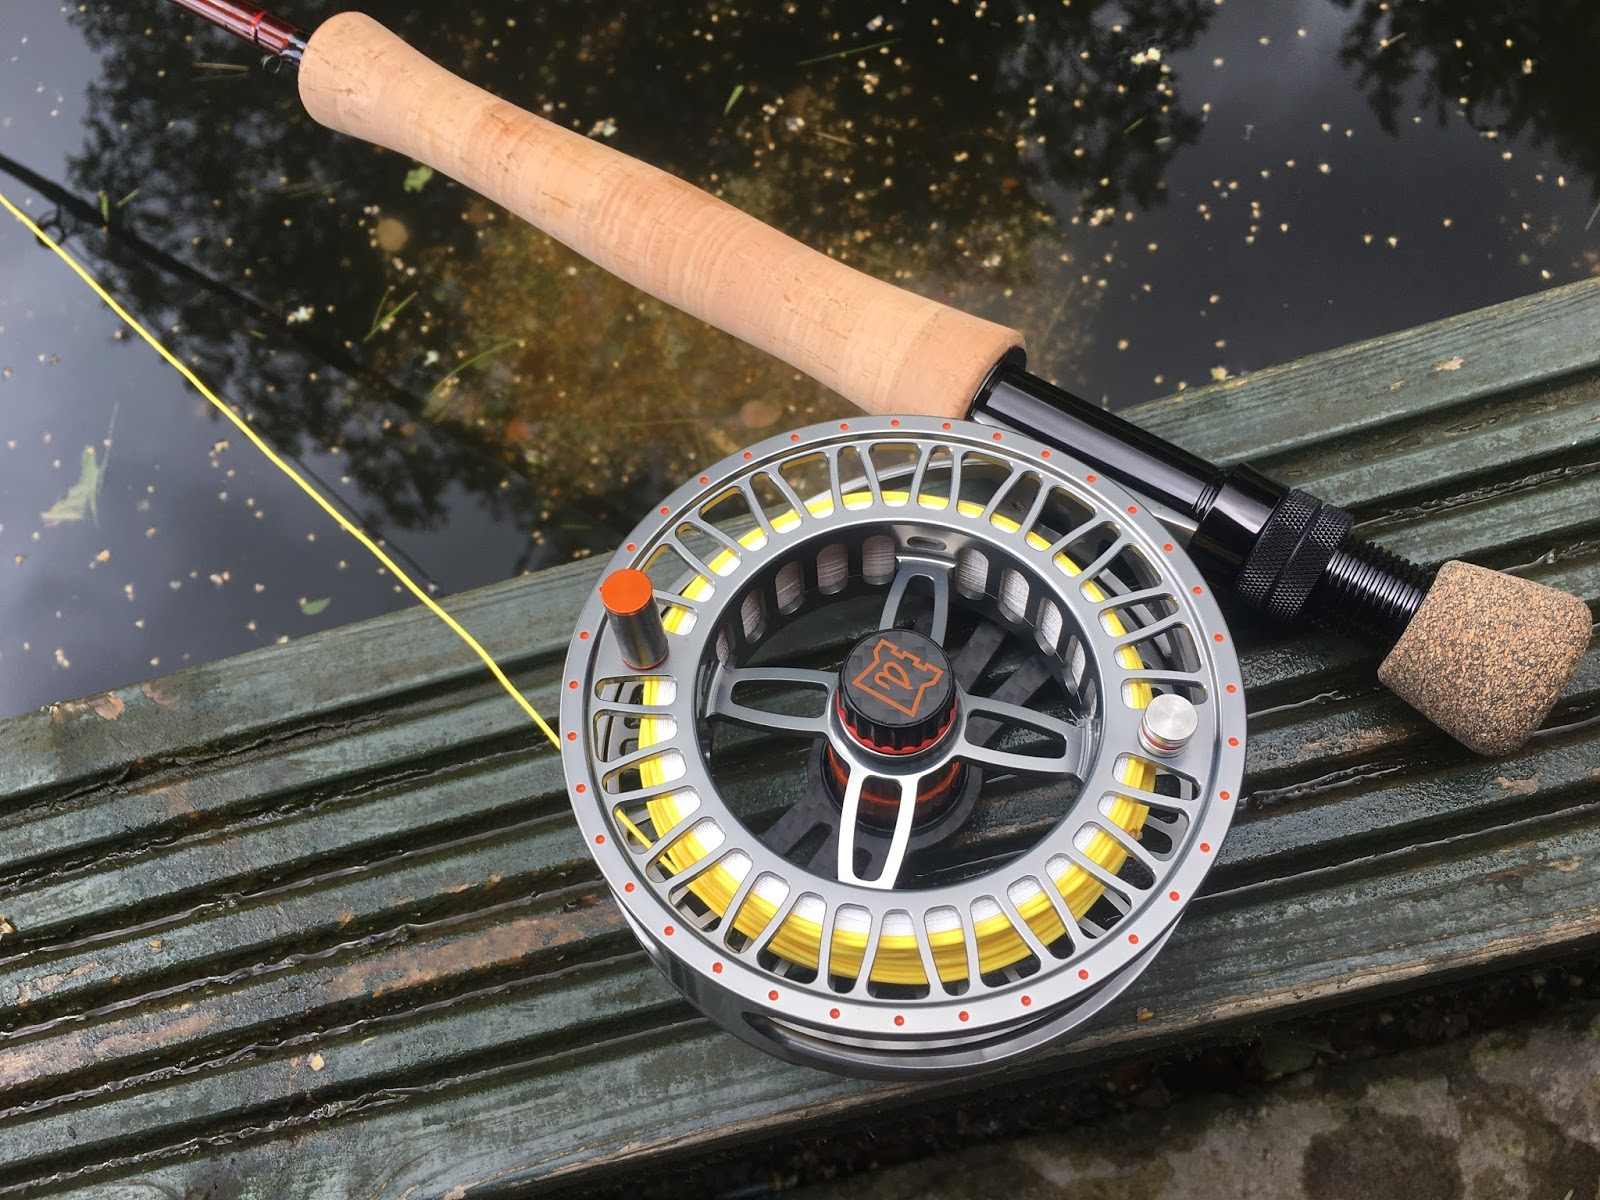 New hardy fly fishing gear for 2018 special preview for New fishing gear